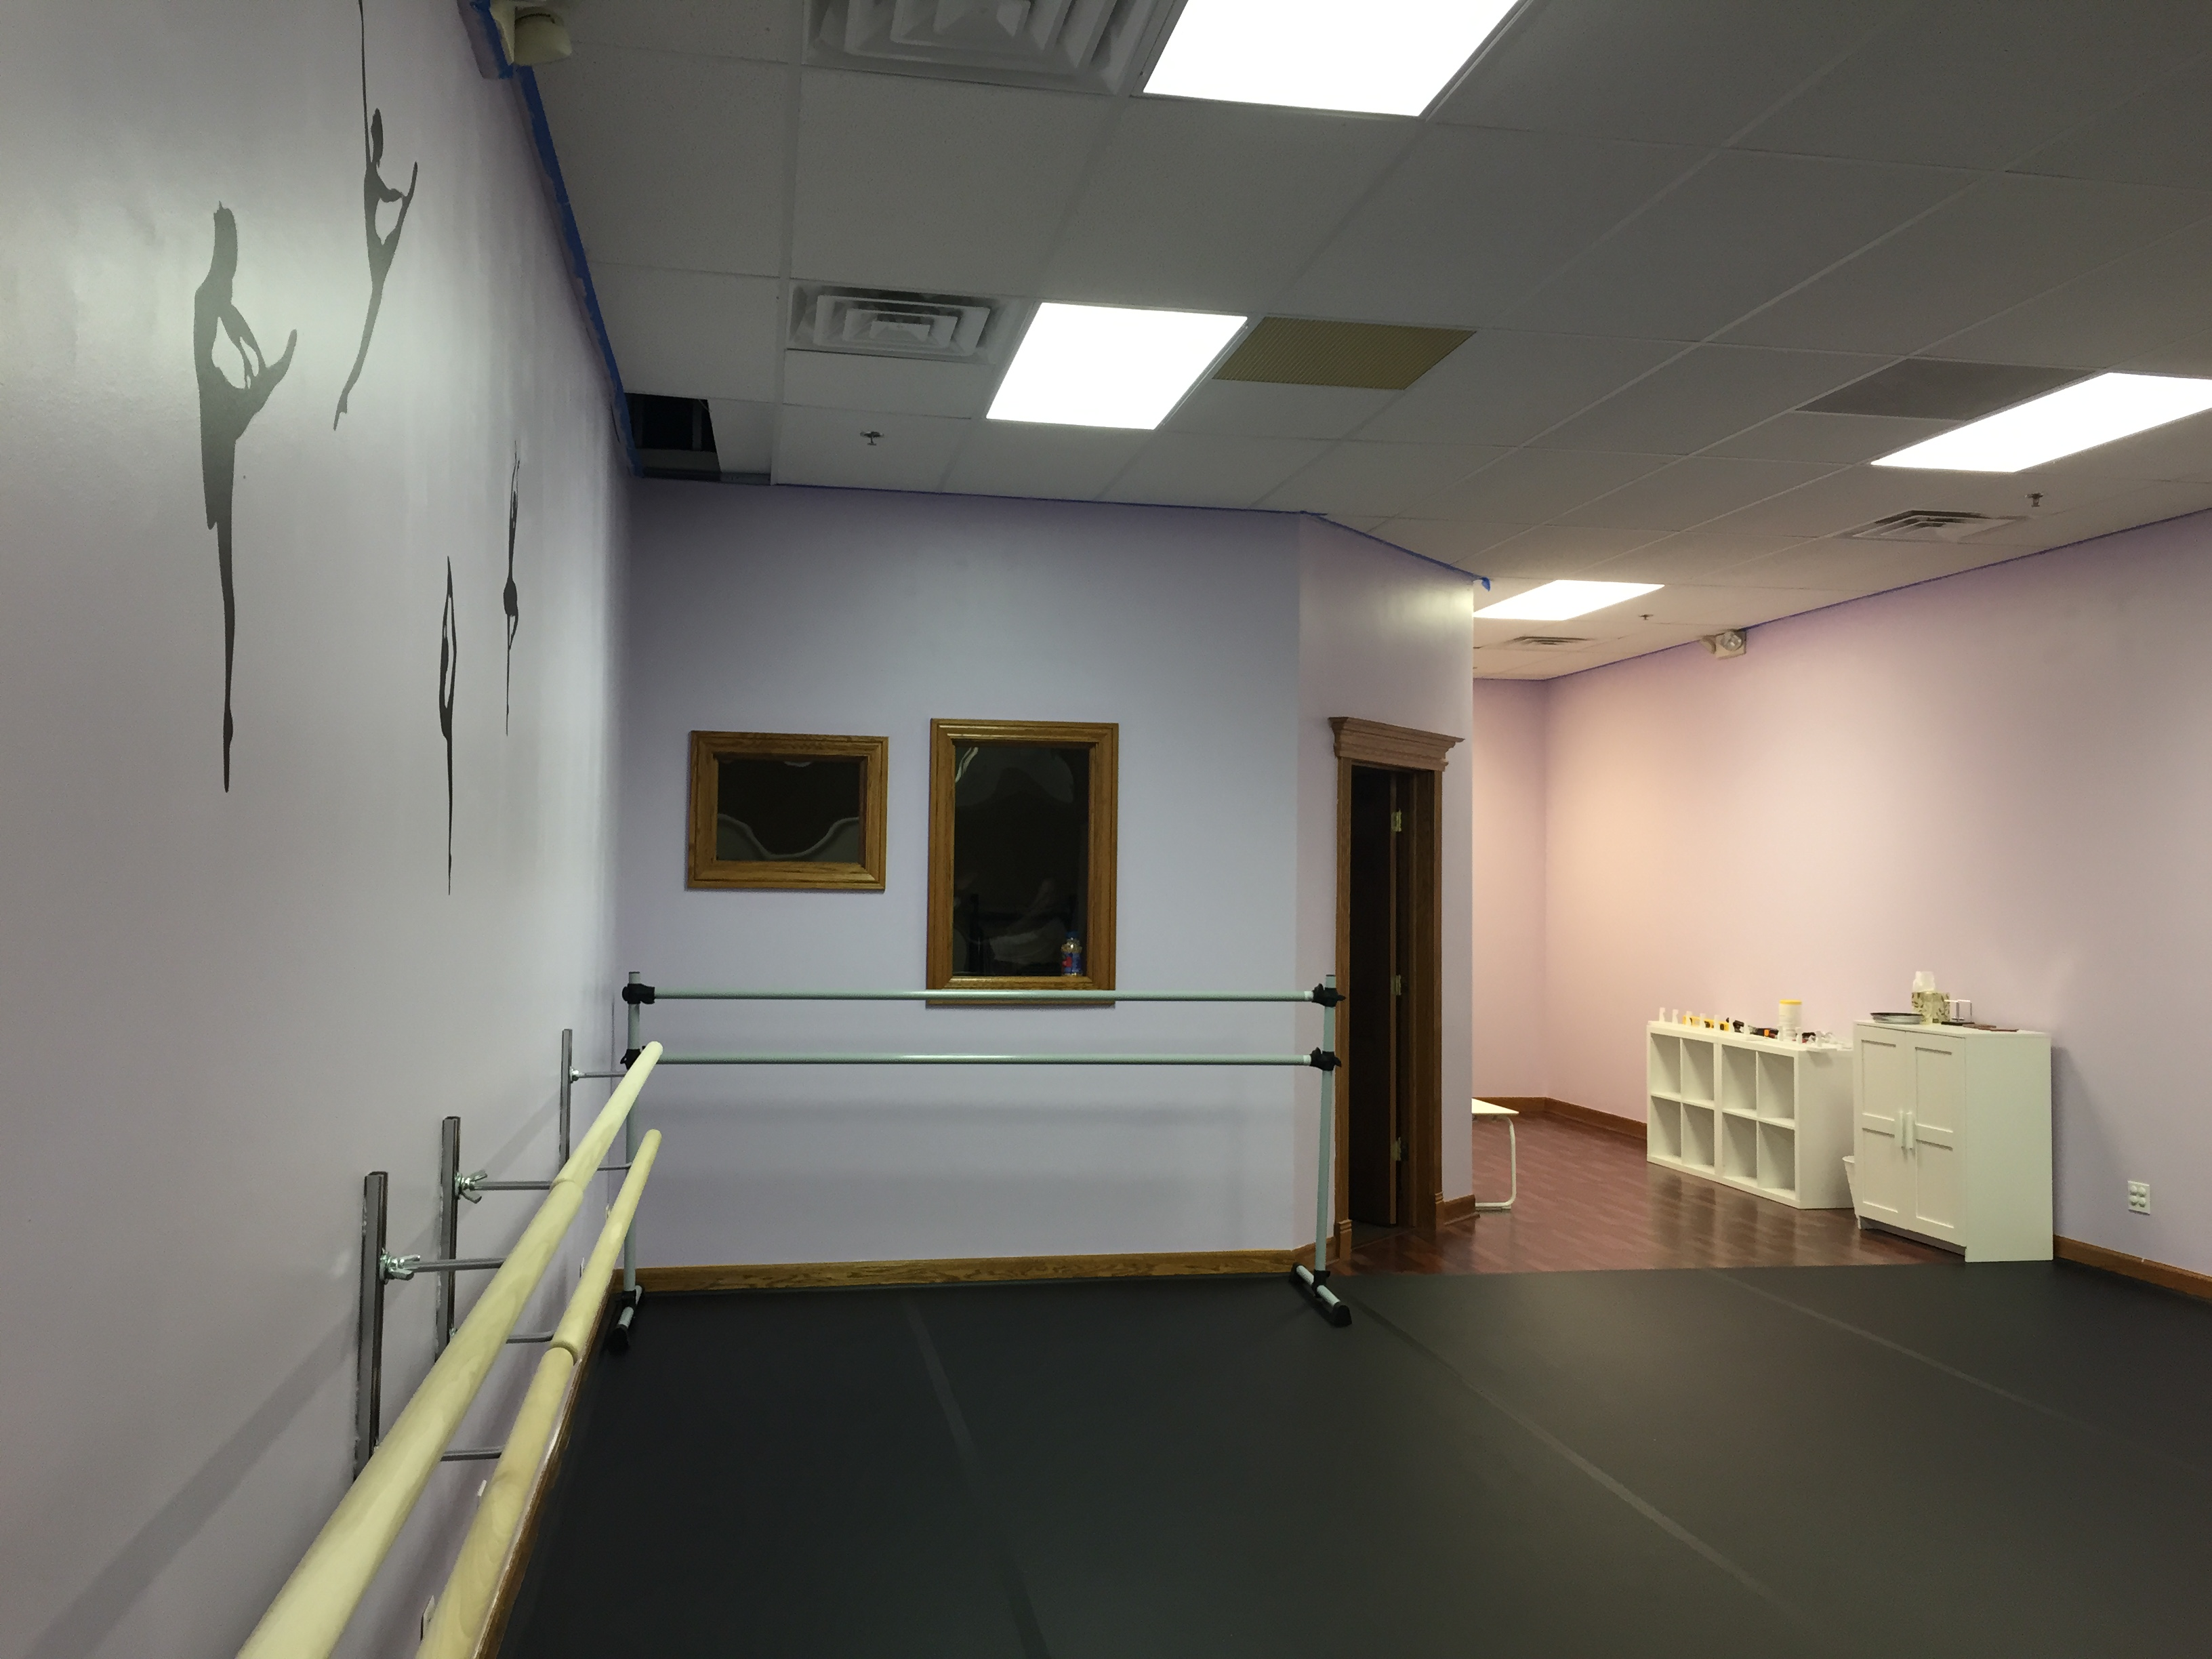 Main Studio Space